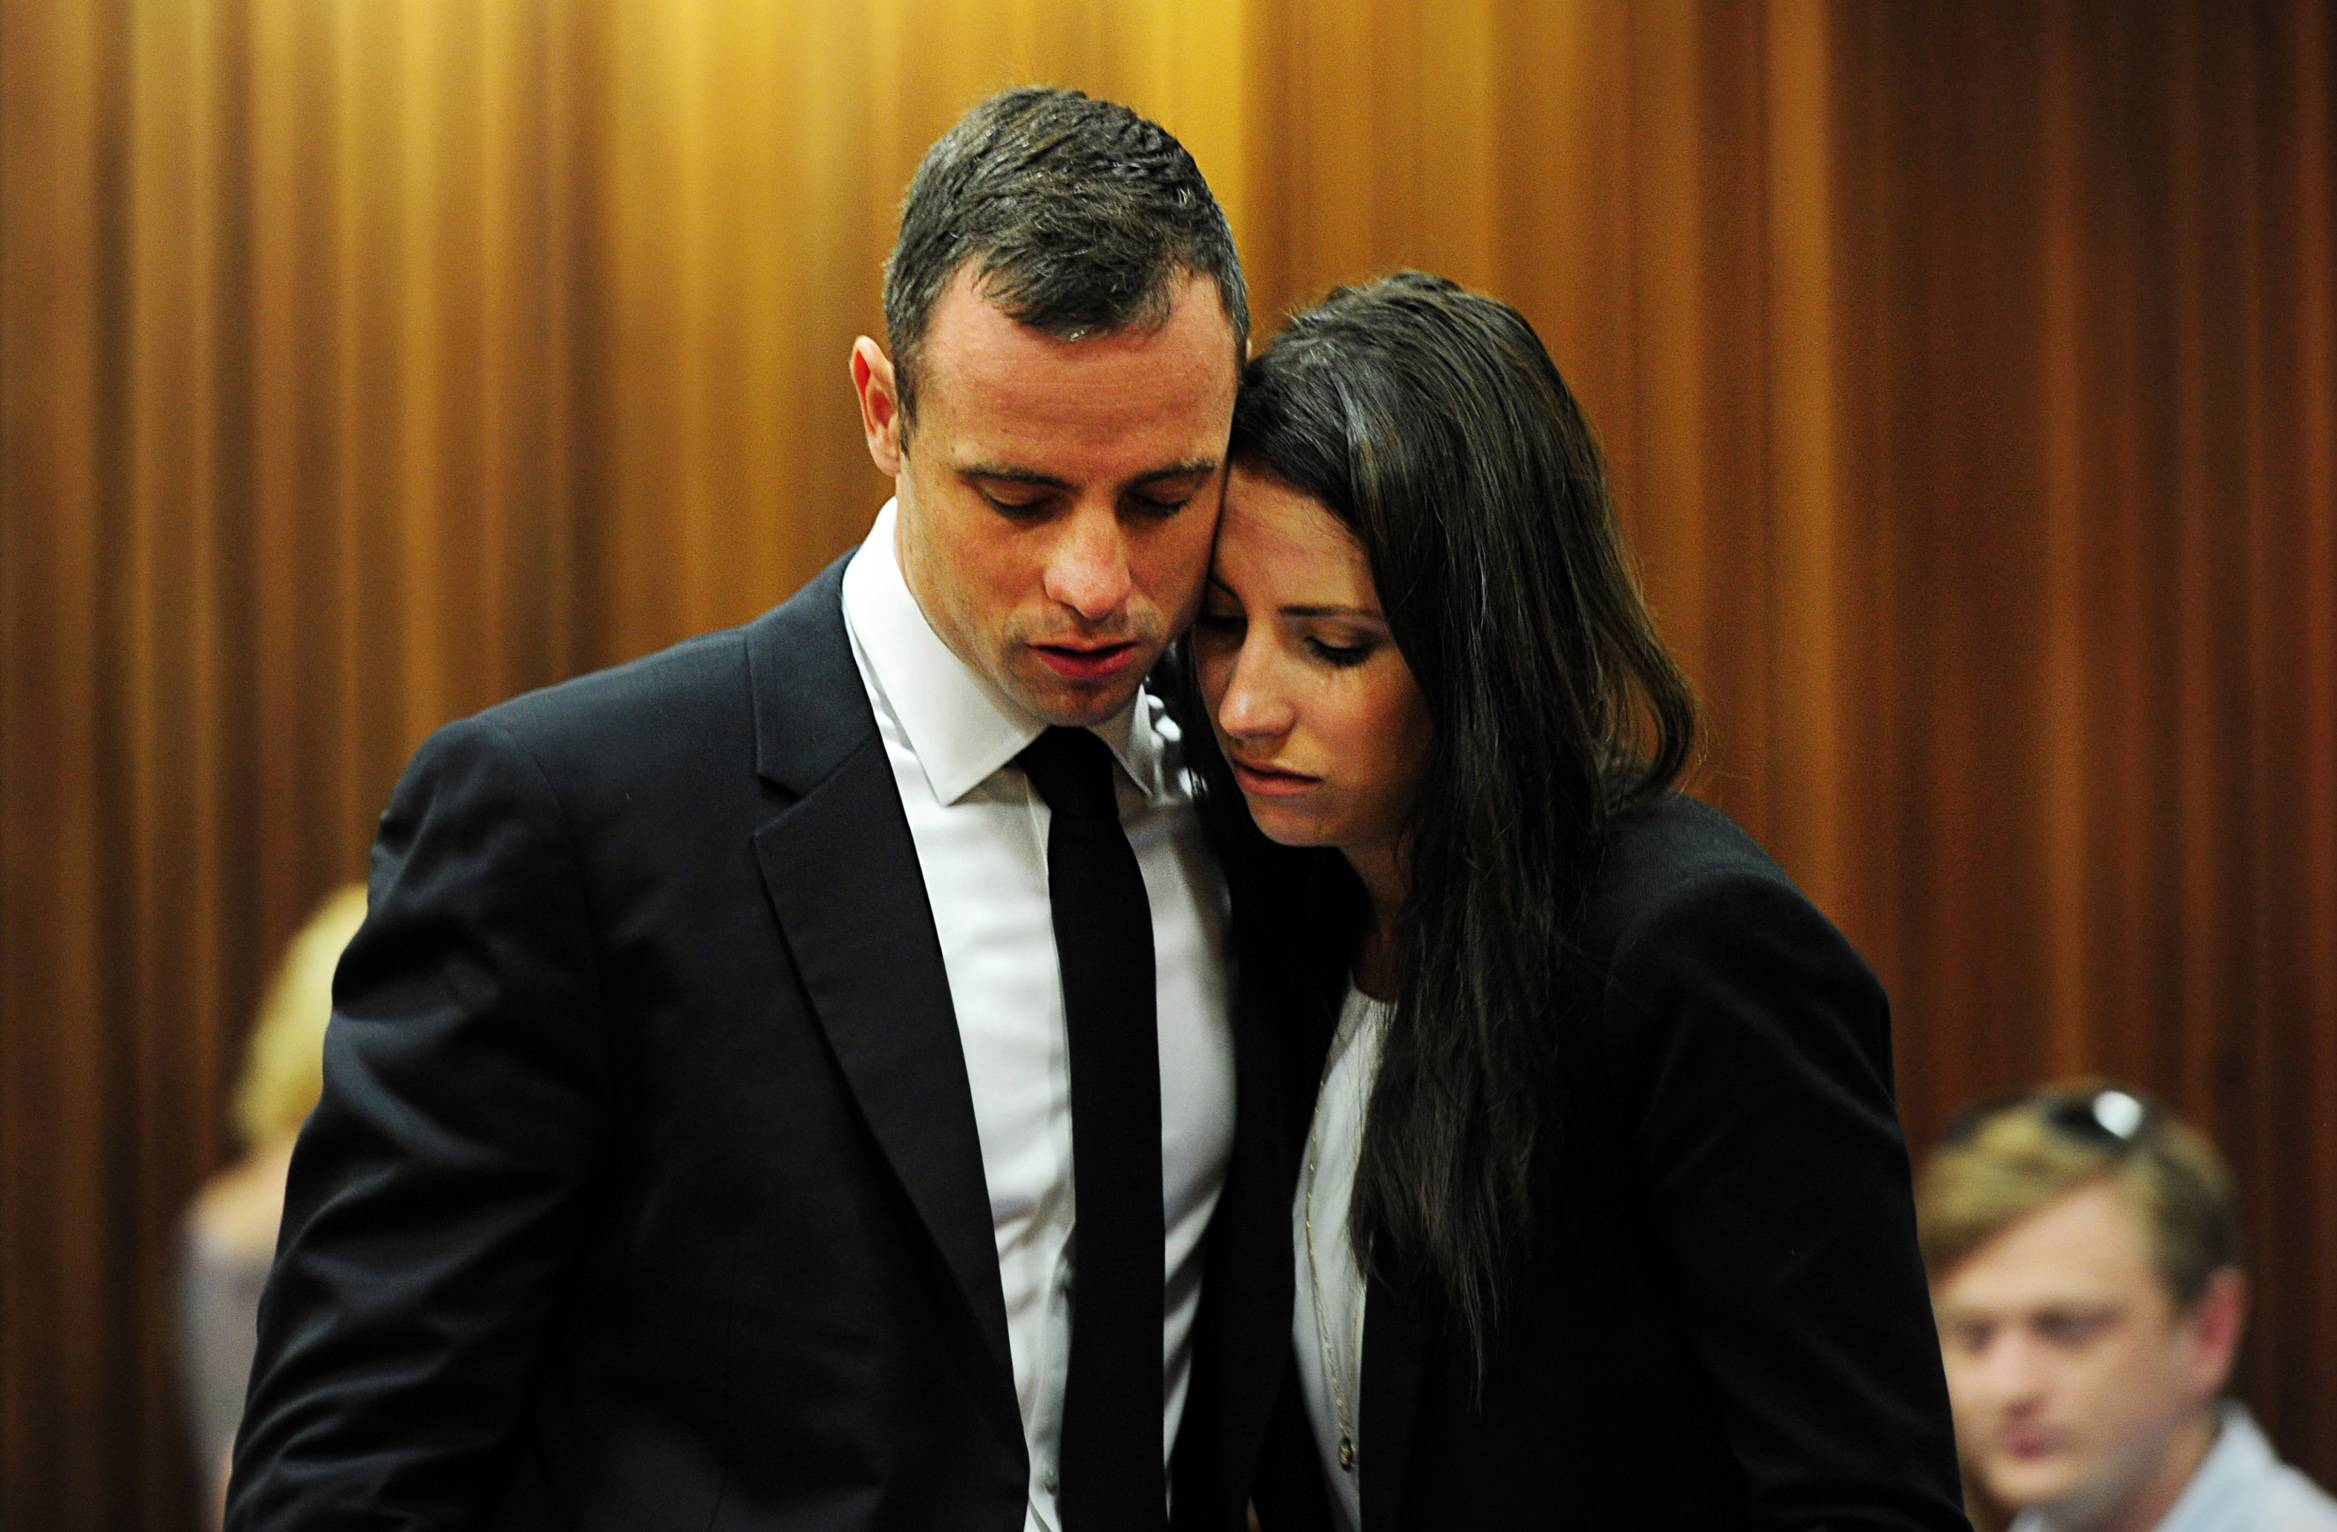 Oscar Pistorius hugs his sister Aimee, right, in court in Pretoria, South Africa, last week. Pistorius is on trial for the murder of his girlfriend Reeva Steenkamp on Valentine's Day in 2013.